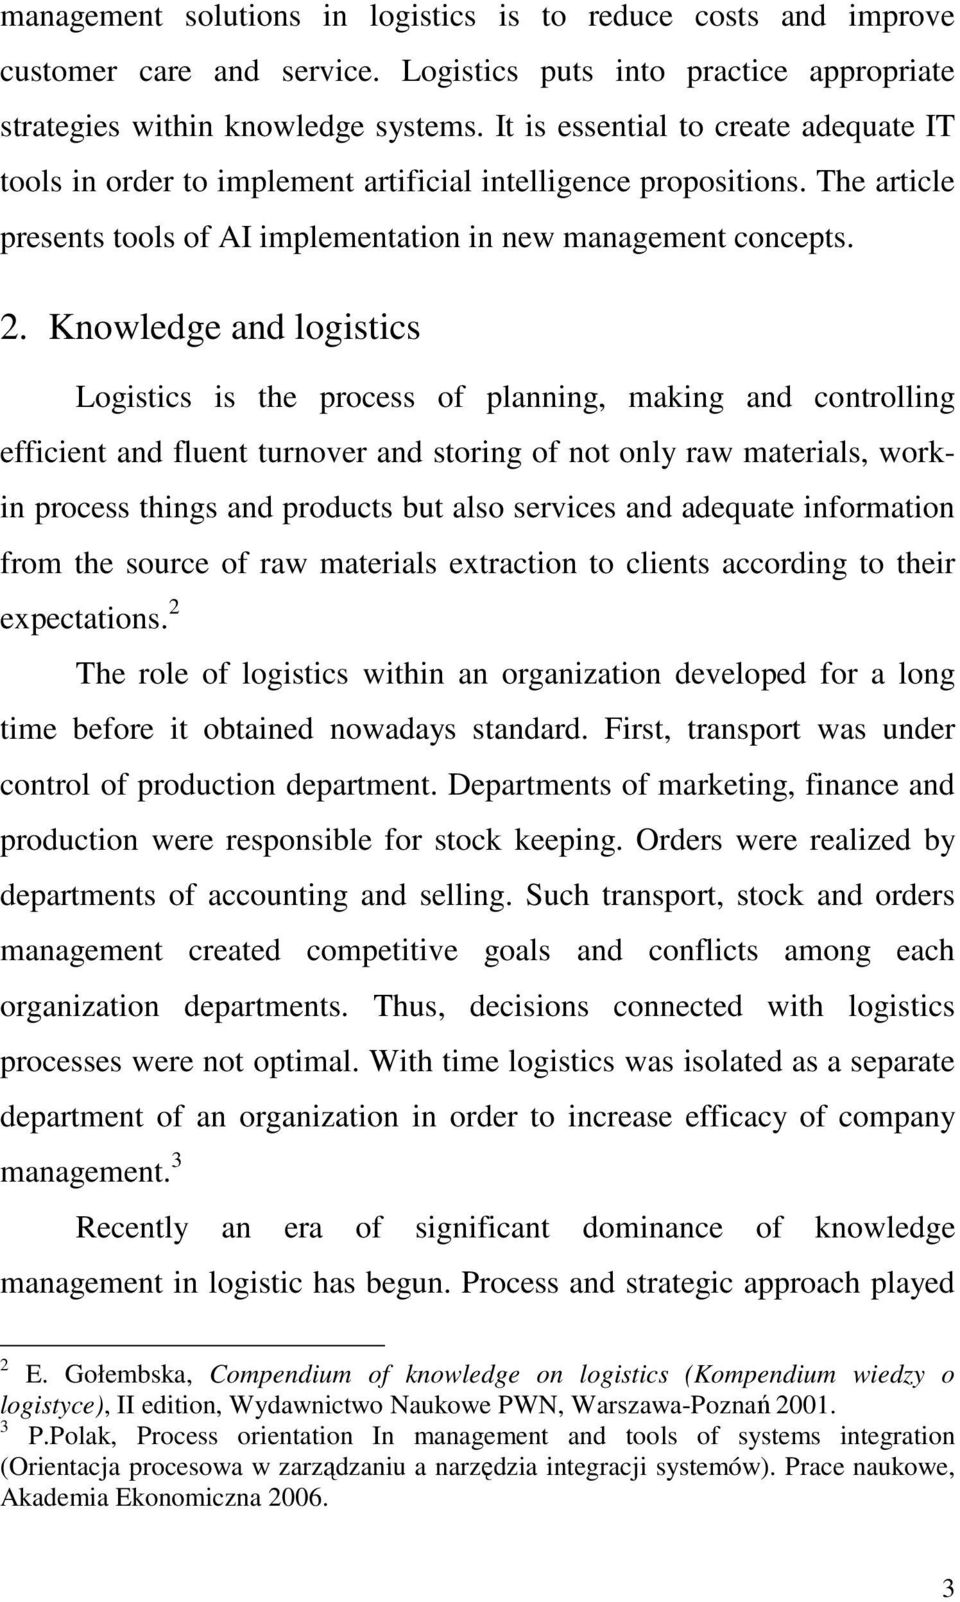 Knowledge and logistics Logistics is the process of planning, making and controlling efficient and fluent turnover and storing of not only raw materials, workin process things and products but also